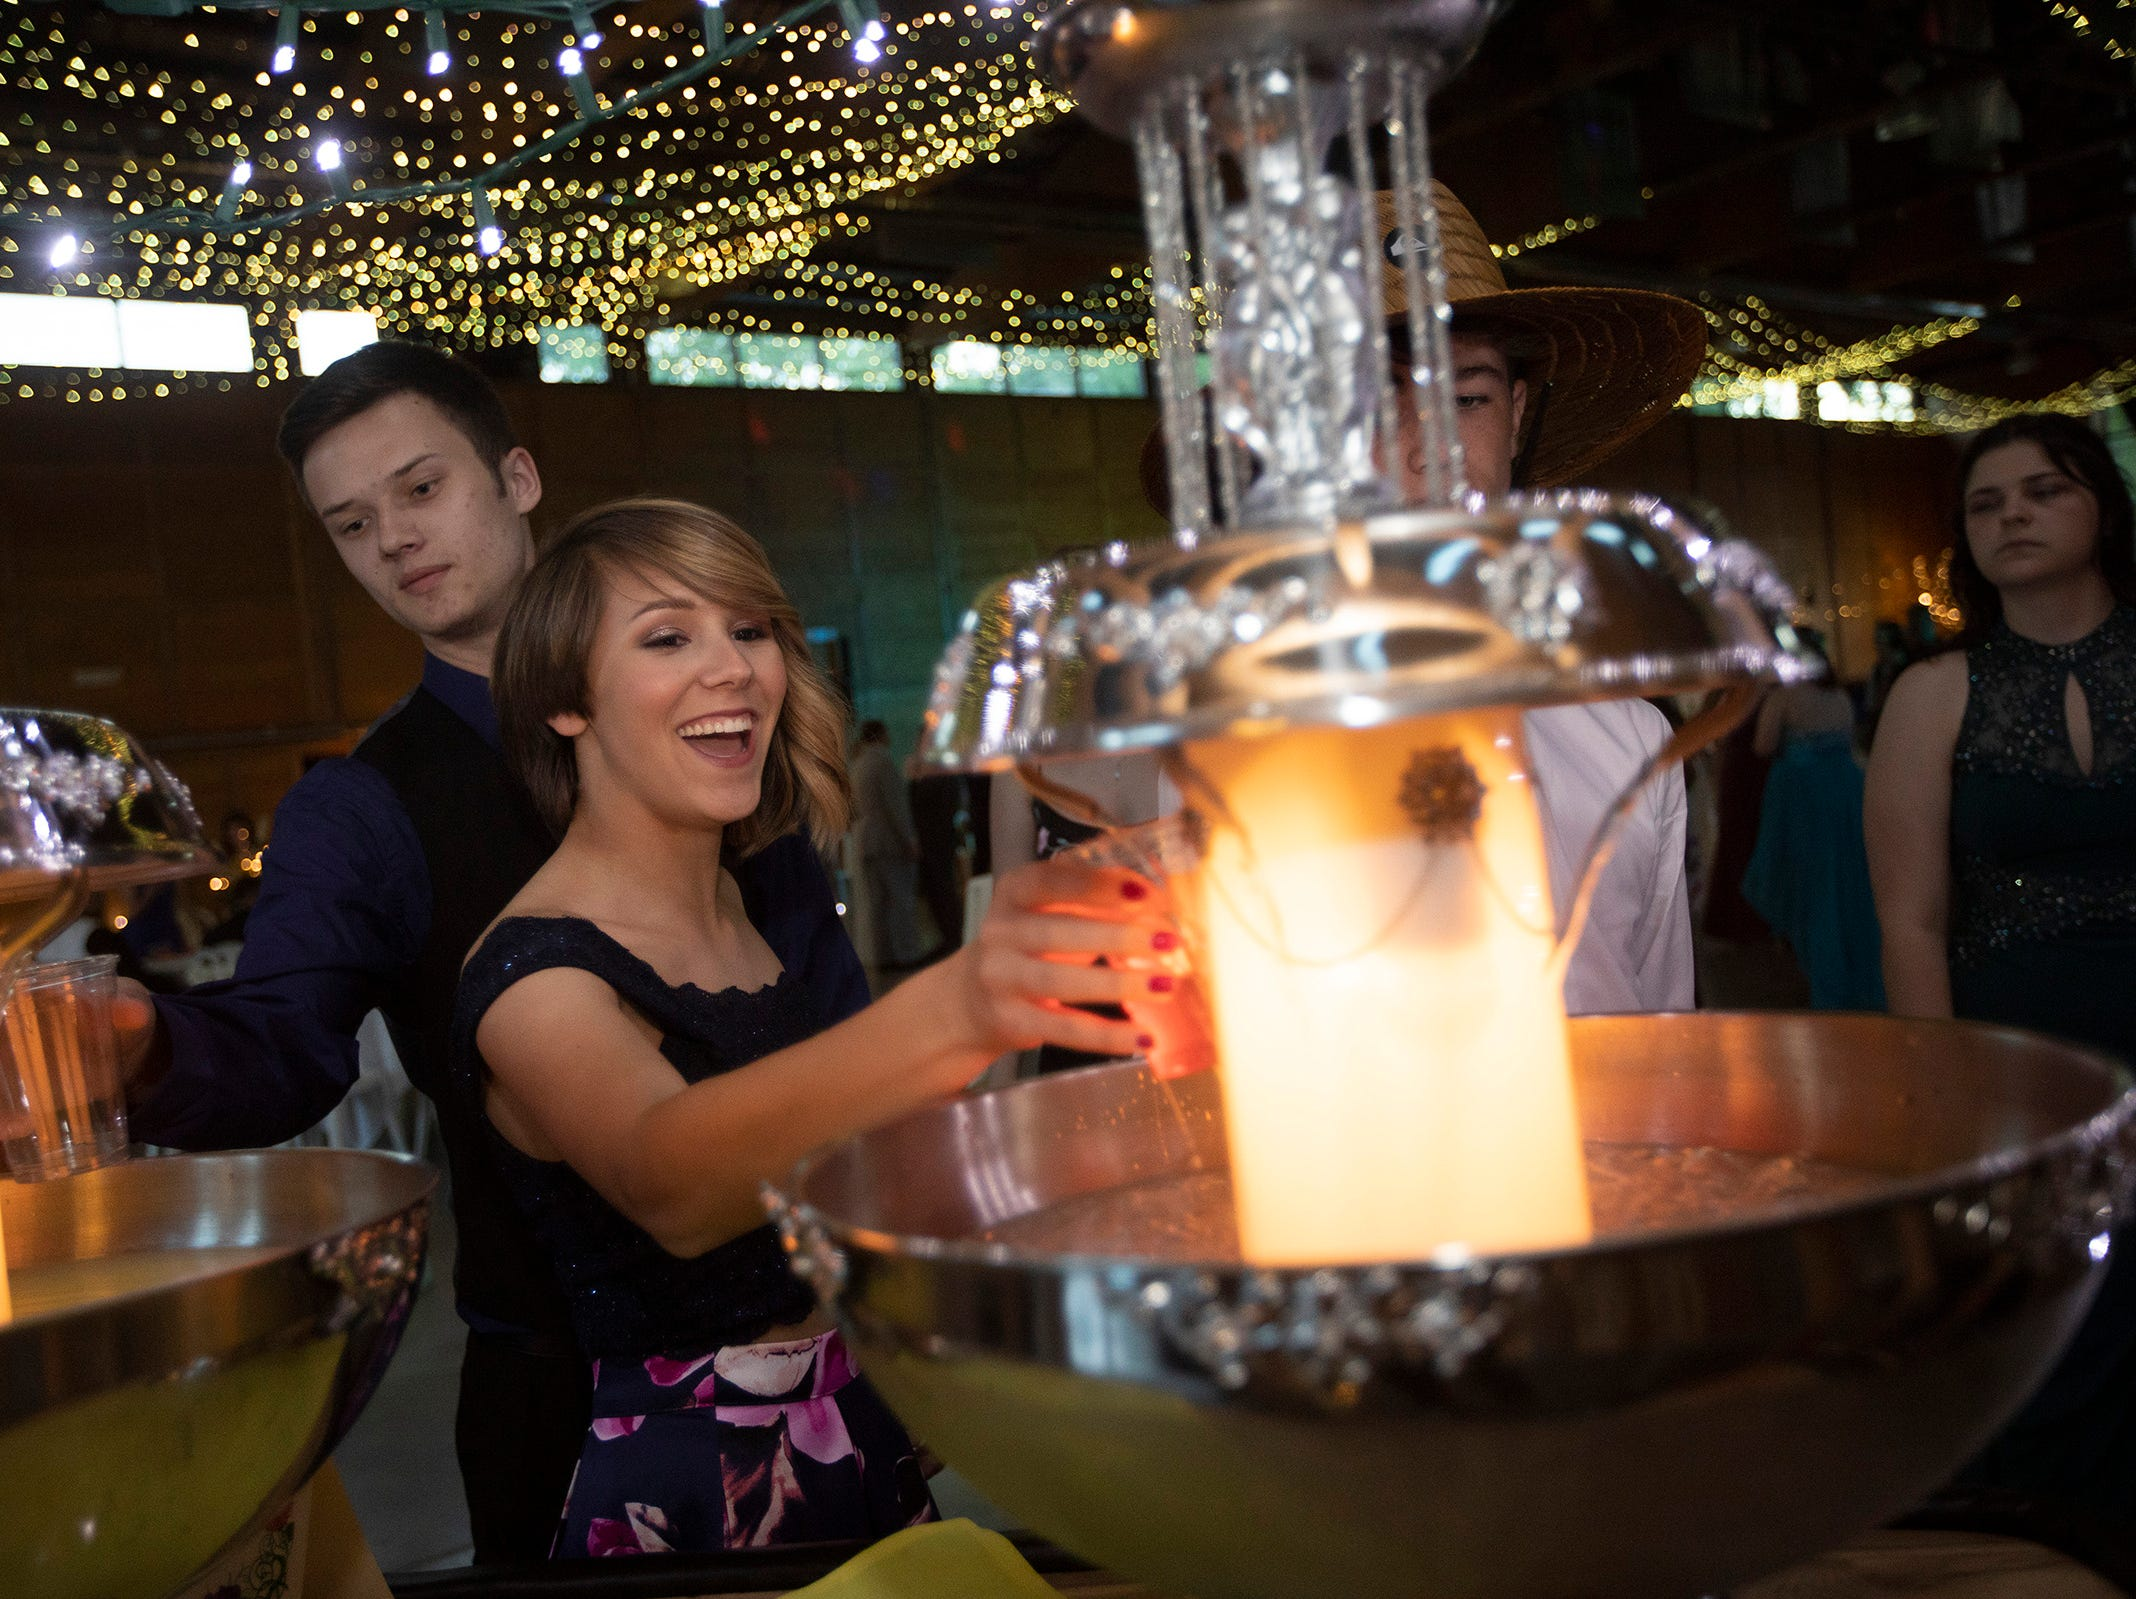 Ayva Bradford, 16, fills a glass of punch during the Silverton High School prom at the Oregon Garden on Saturday, May 11.